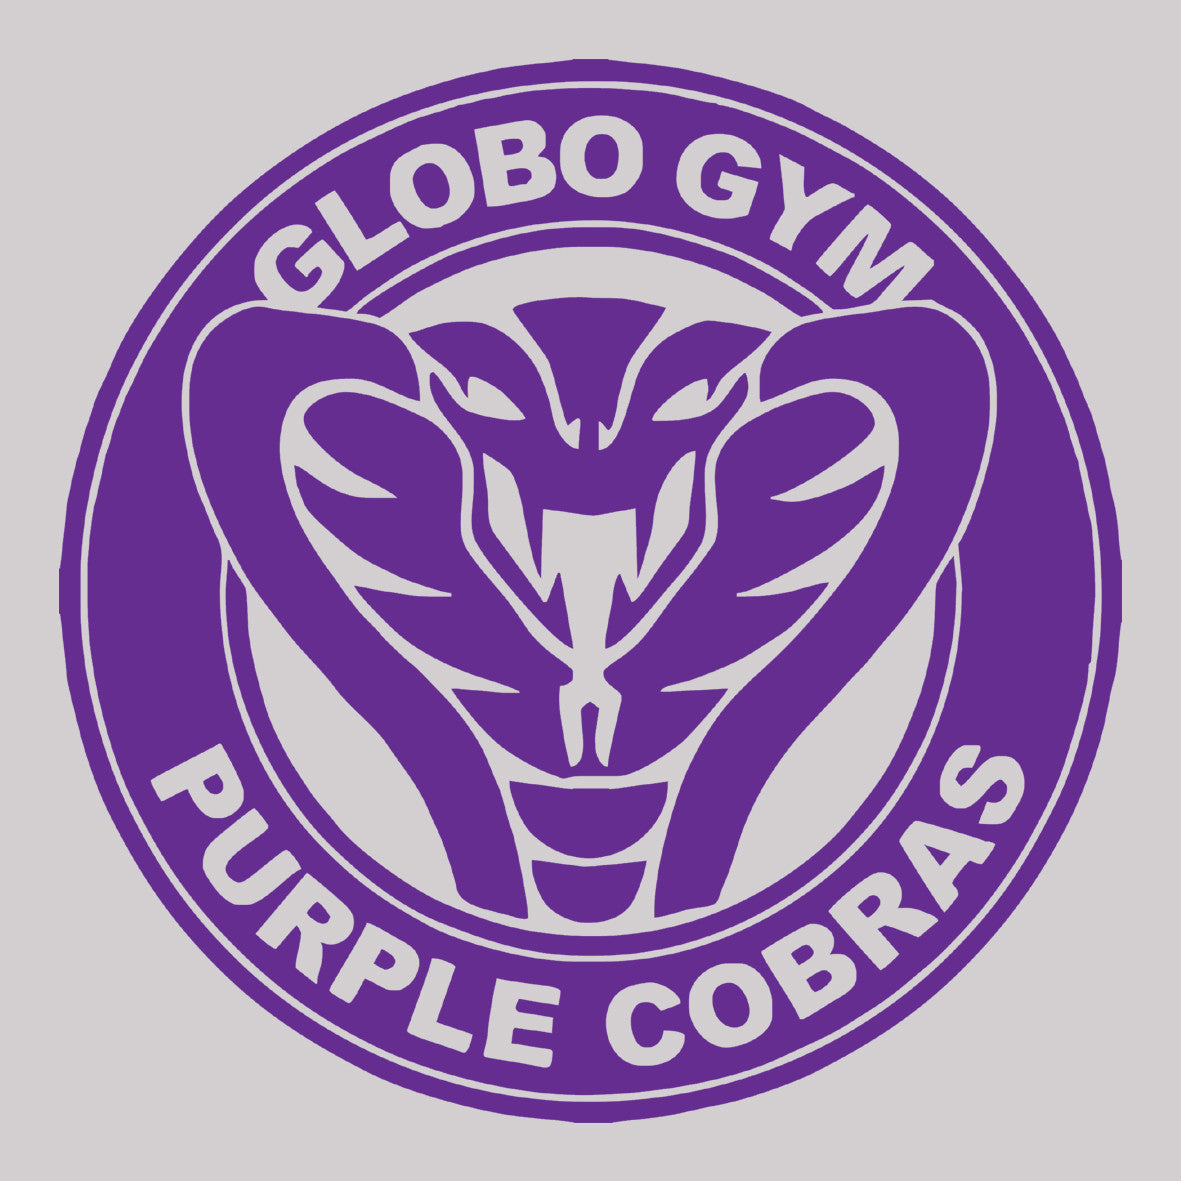 globo gym purple cobras central t shirts rh centraltshirts com globo gym purple cobras logo globo gym purple cobras logo vector